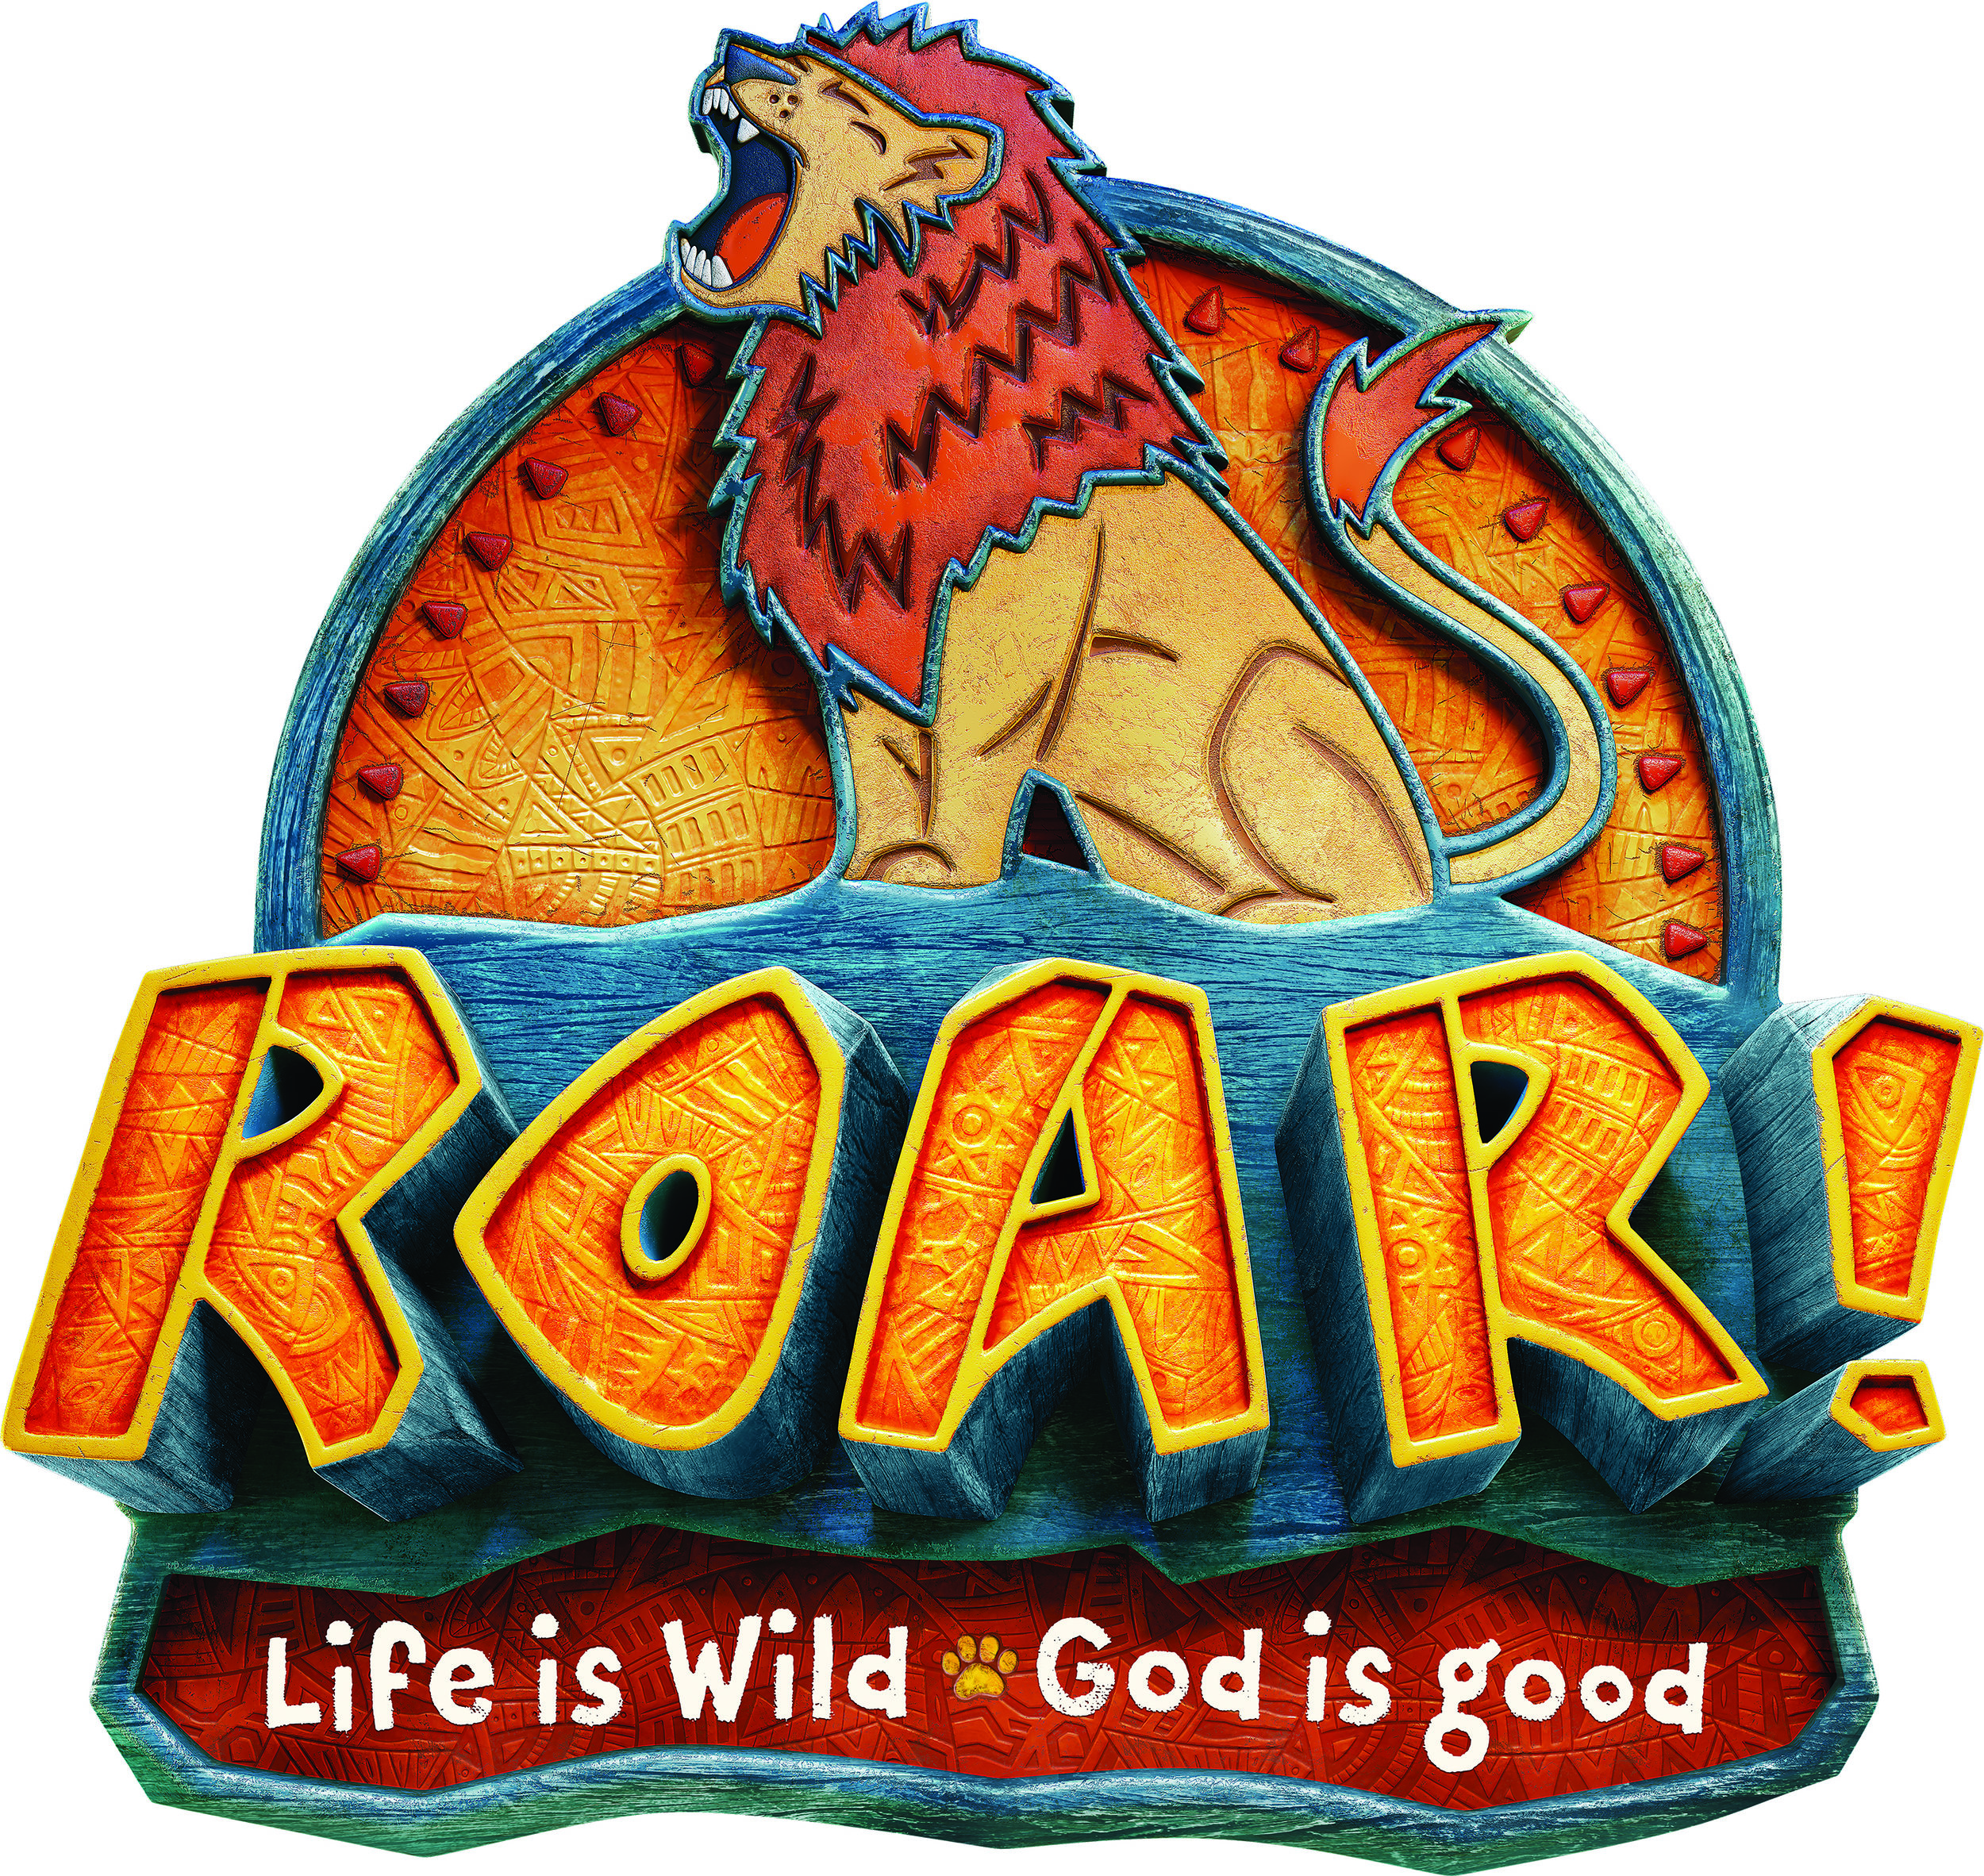 VBS Sign Up - When: July 22 - July 26Time: 9a.m. - NoonWhere: Weakland Fawkes Park (Burland Park)Address: 876 Burland Drive, Bailey, COFor: Kiddos going in to Kindergarten - 5th GradeCost: Free